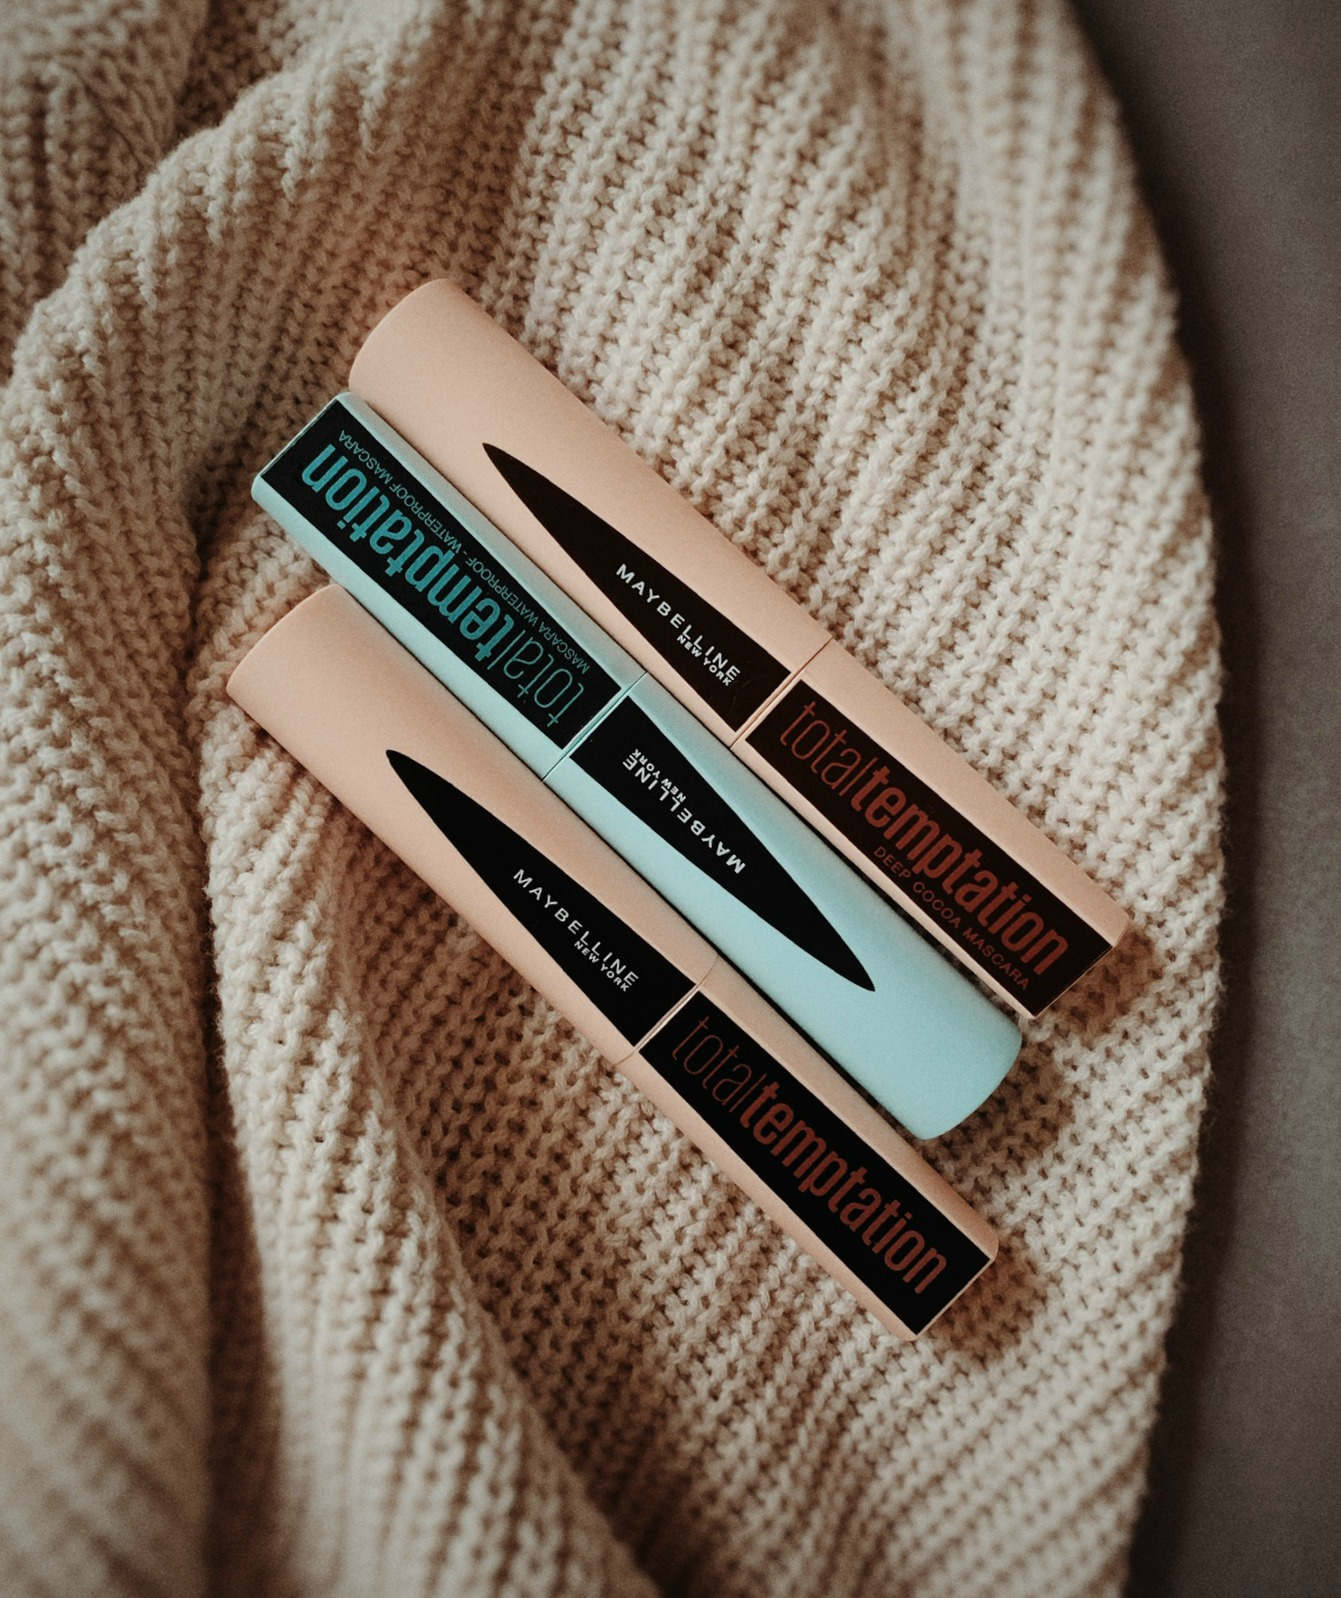 Maybelline Total Temptation Brown Deep Cacao Mascara